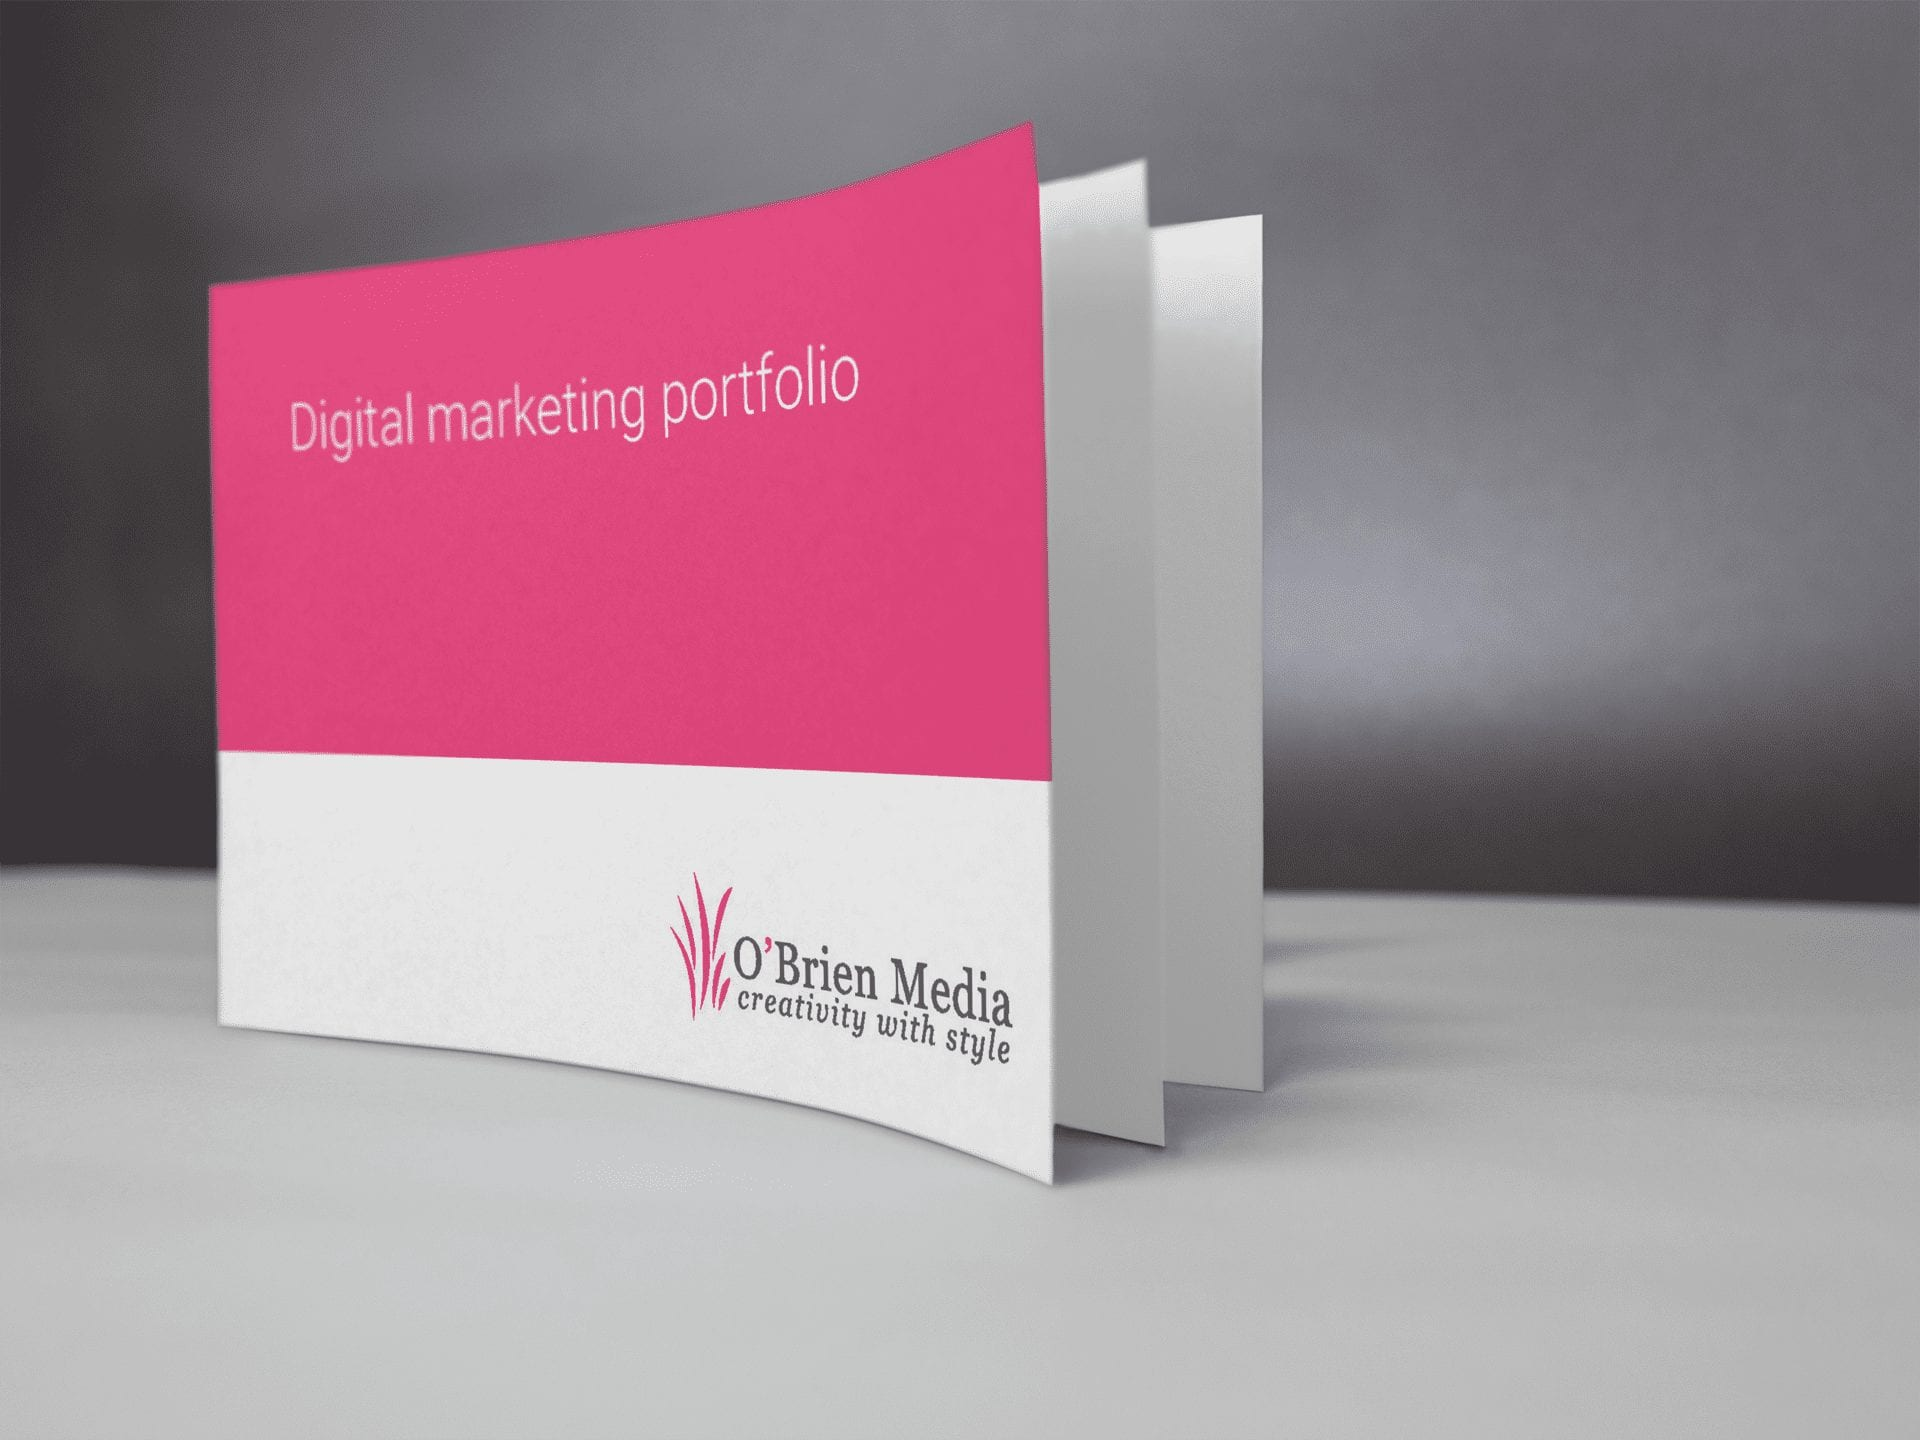 take-a-look-at-our-new-digital-marketing-portfolio-booklet.png